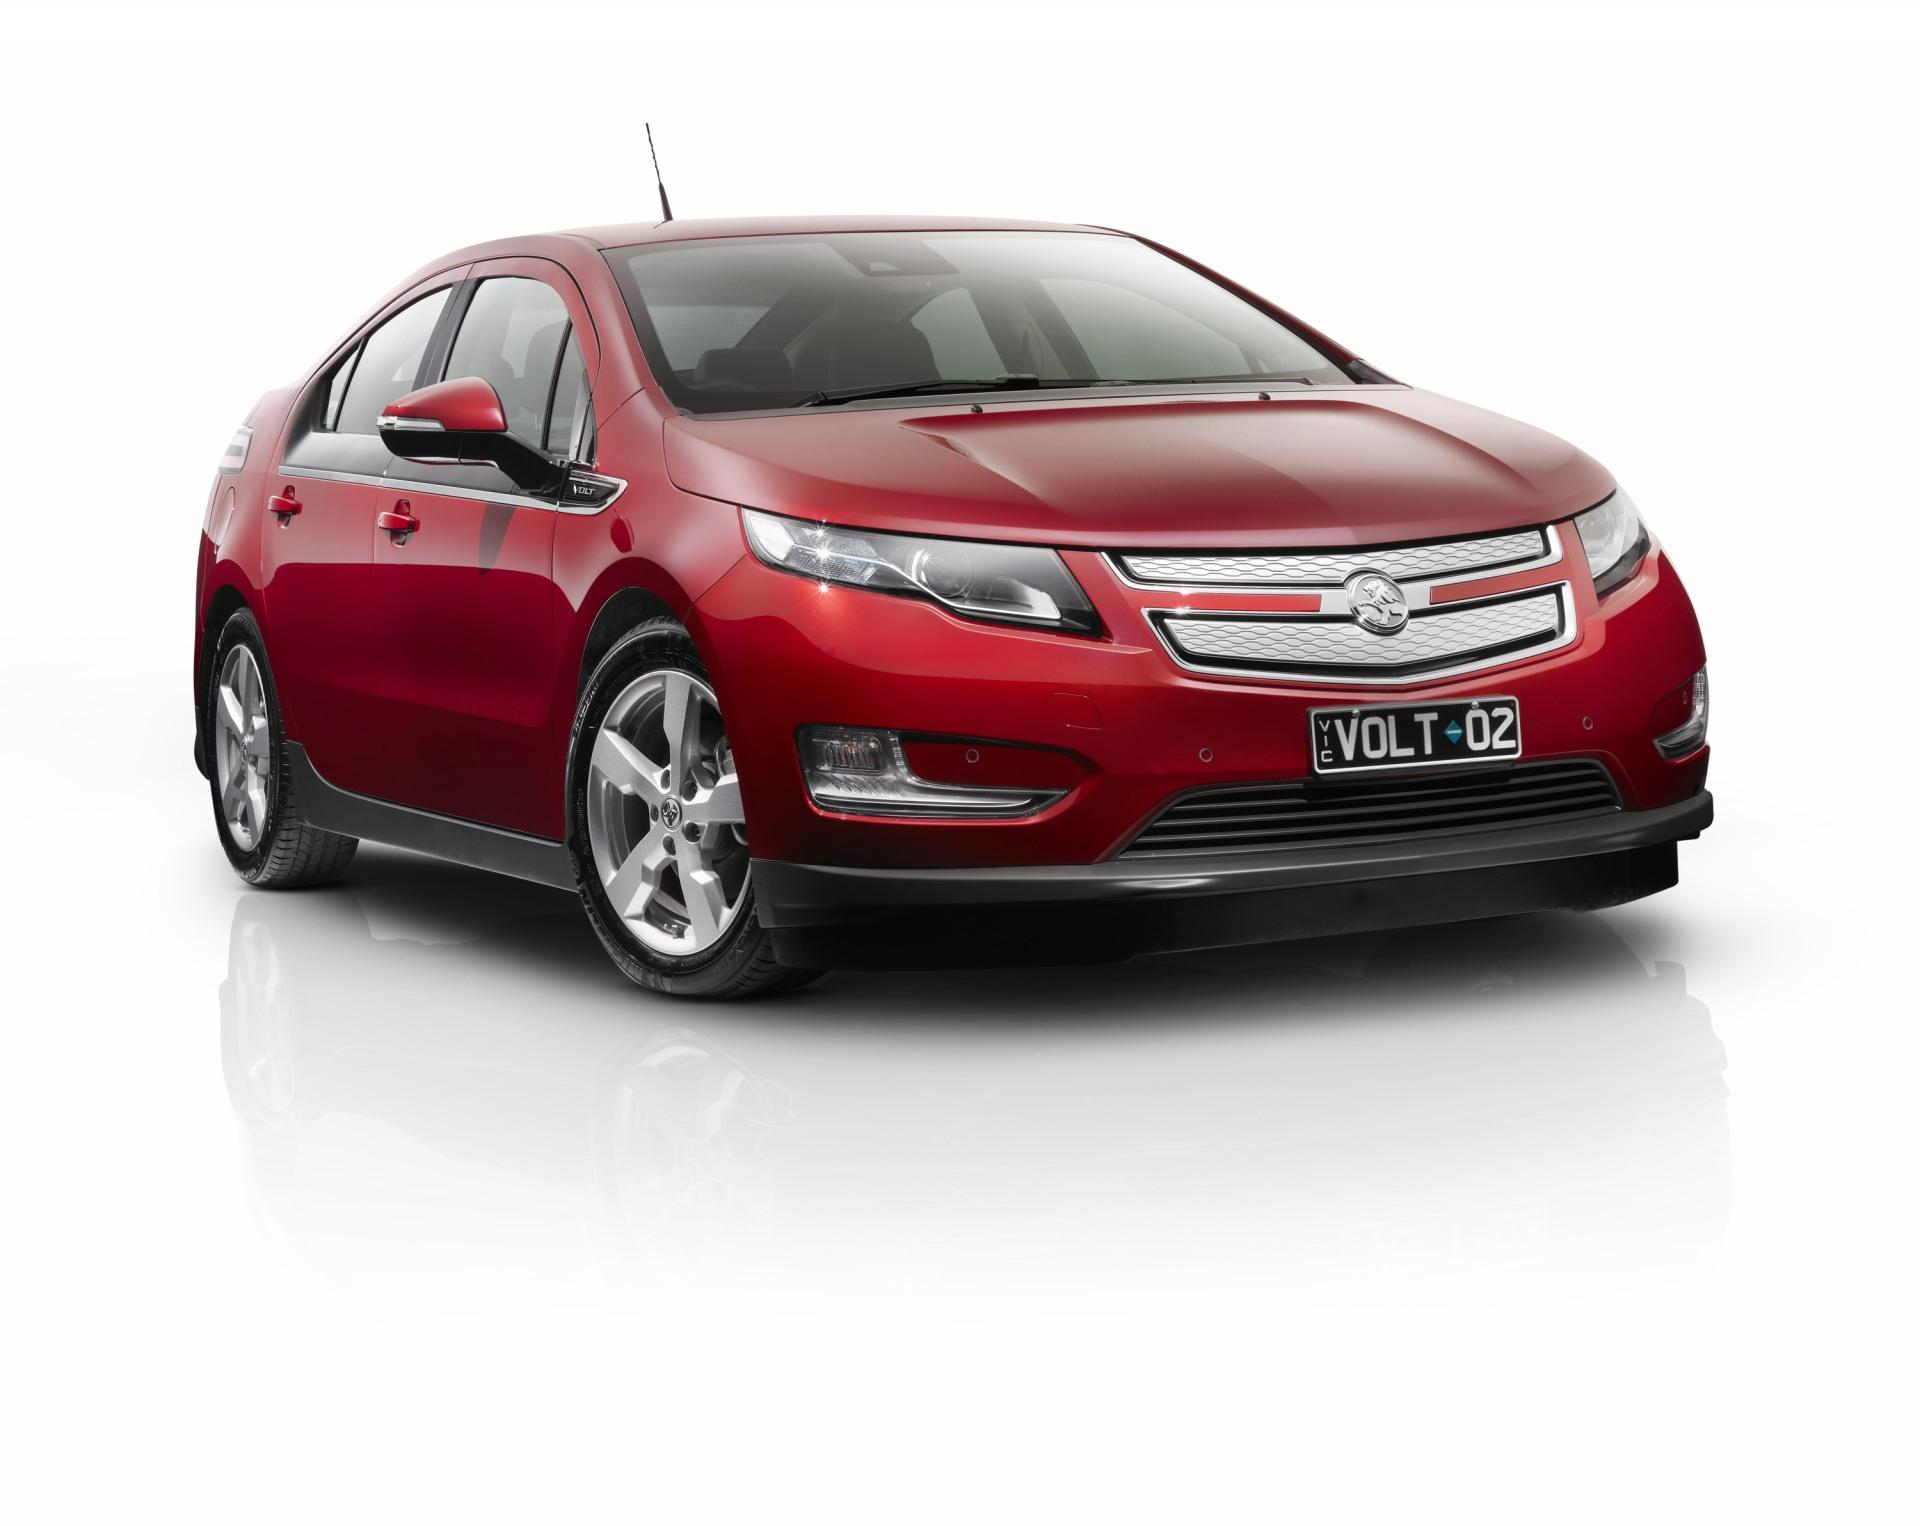 Auction results and data for 2013 Holden Volt - Conceptcarz